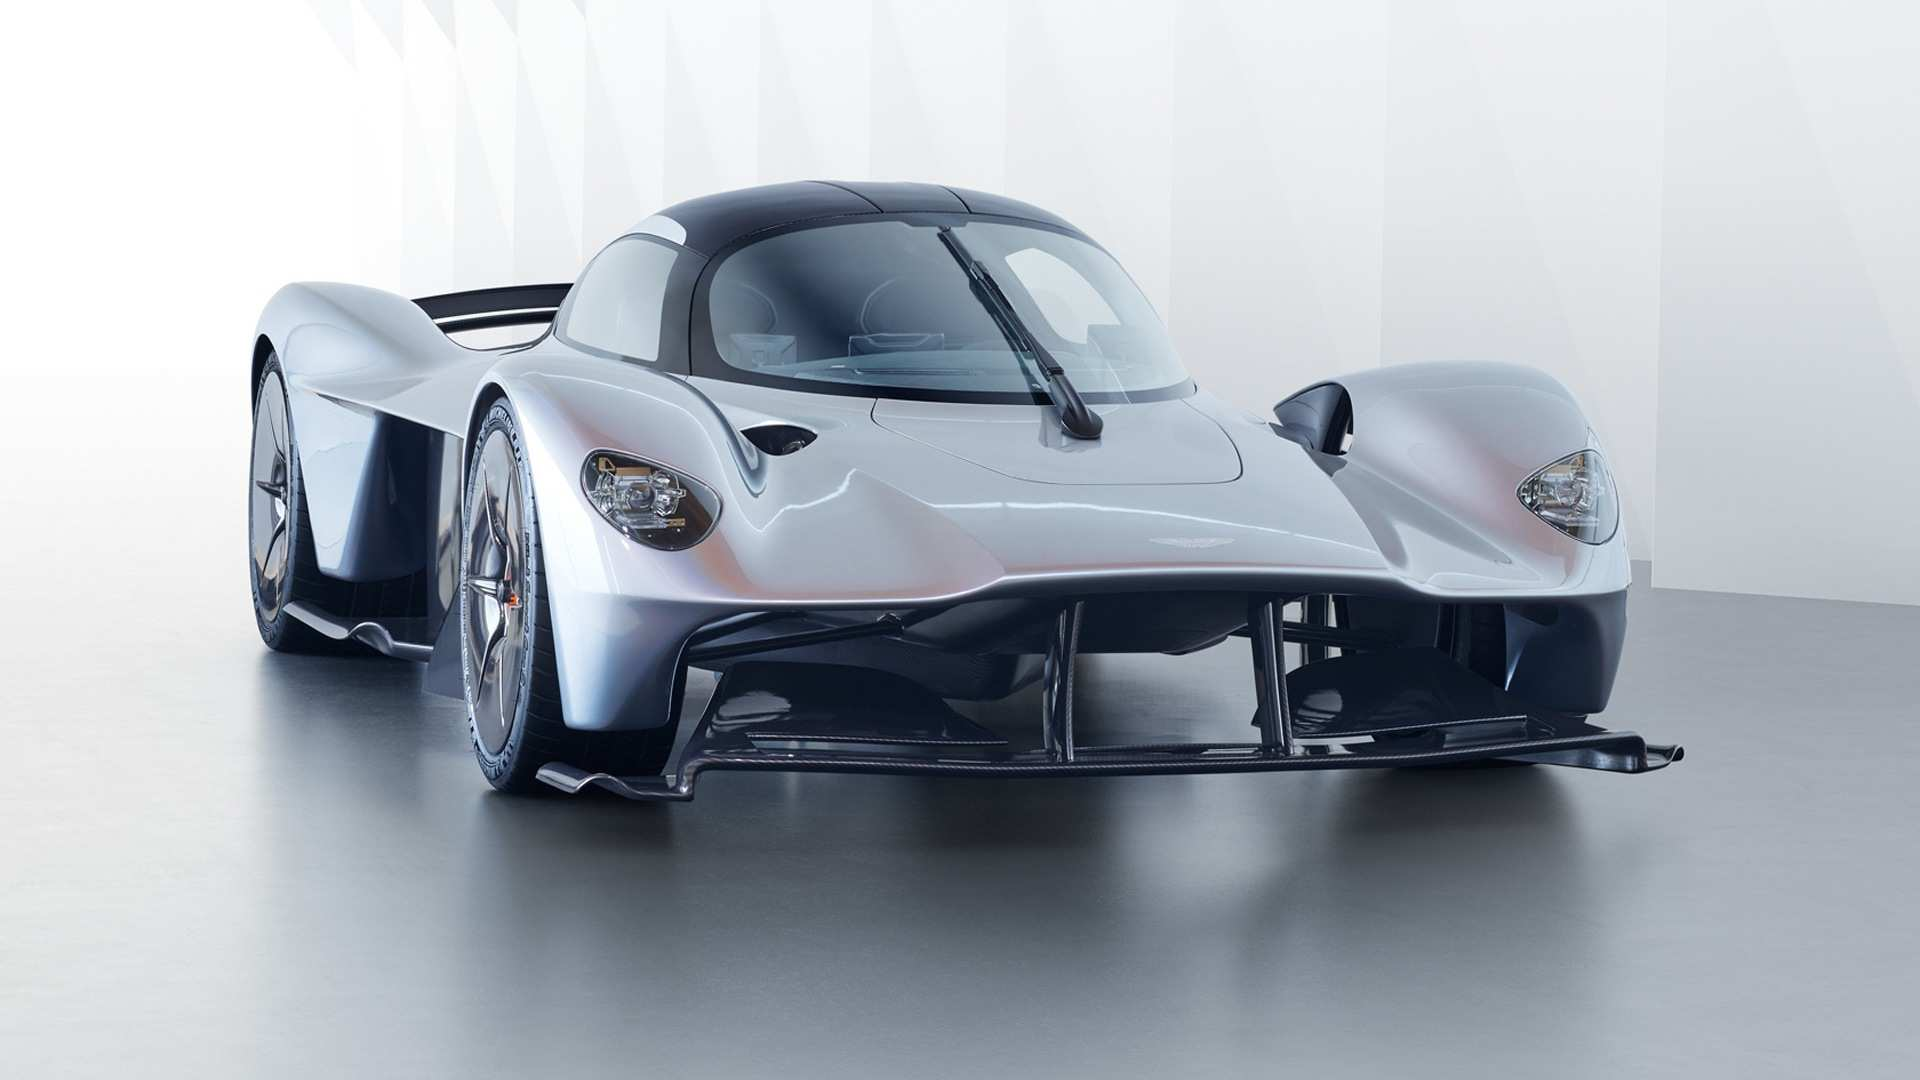 58 The Best 2020 Aston Martin Valkyrie Specs And Review